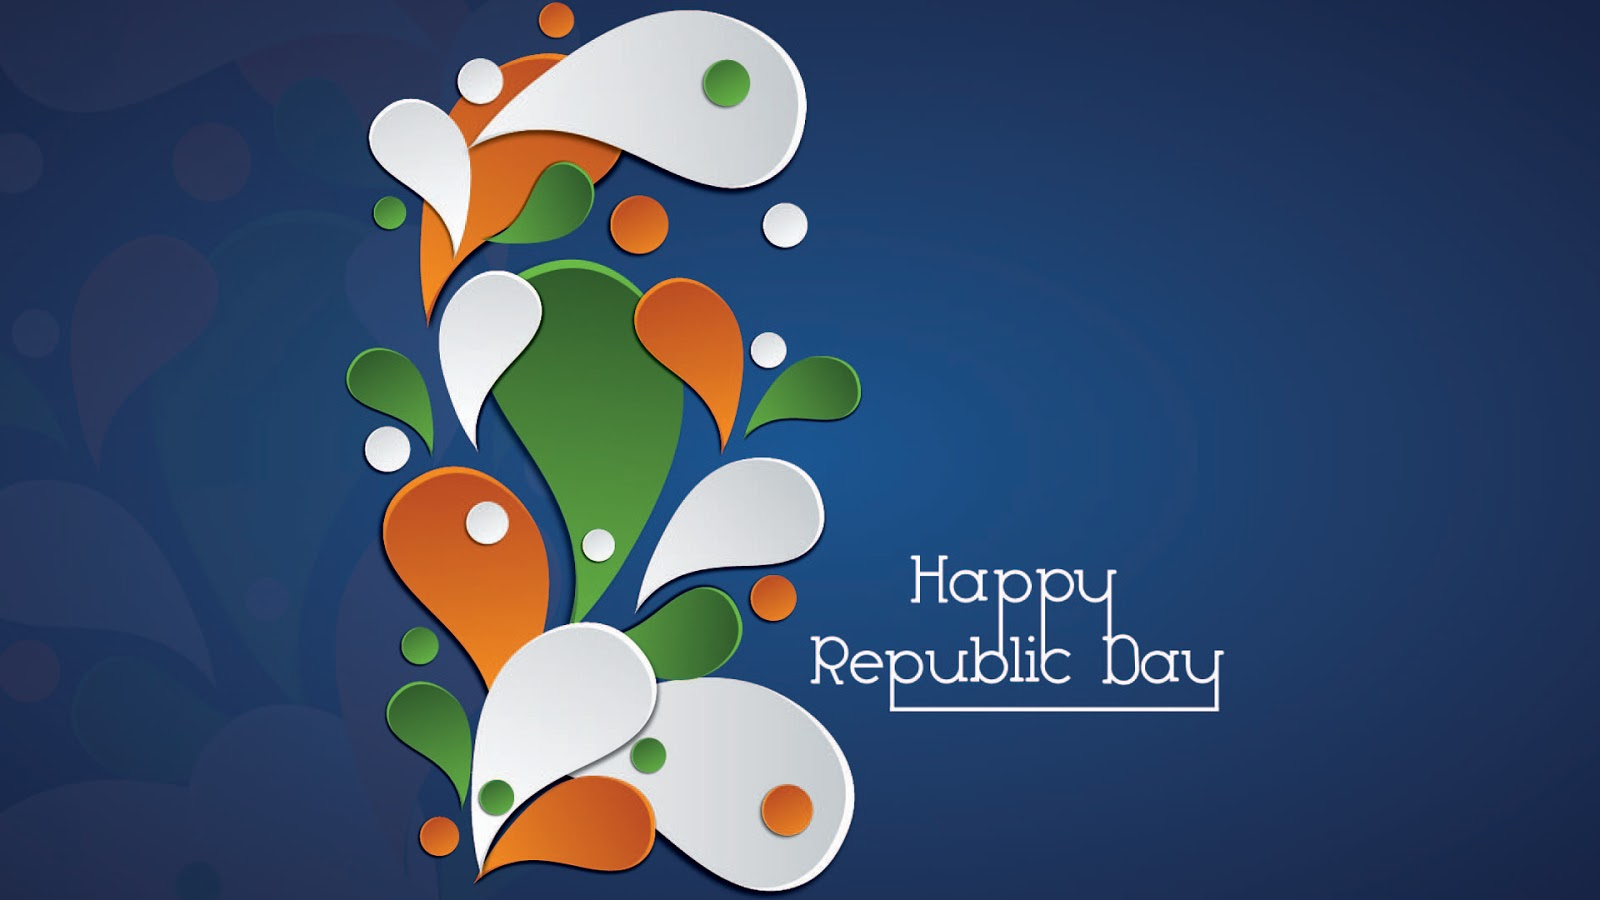 Best hd wallpaper of happy republic day 2018 26 january for 26 january decoration